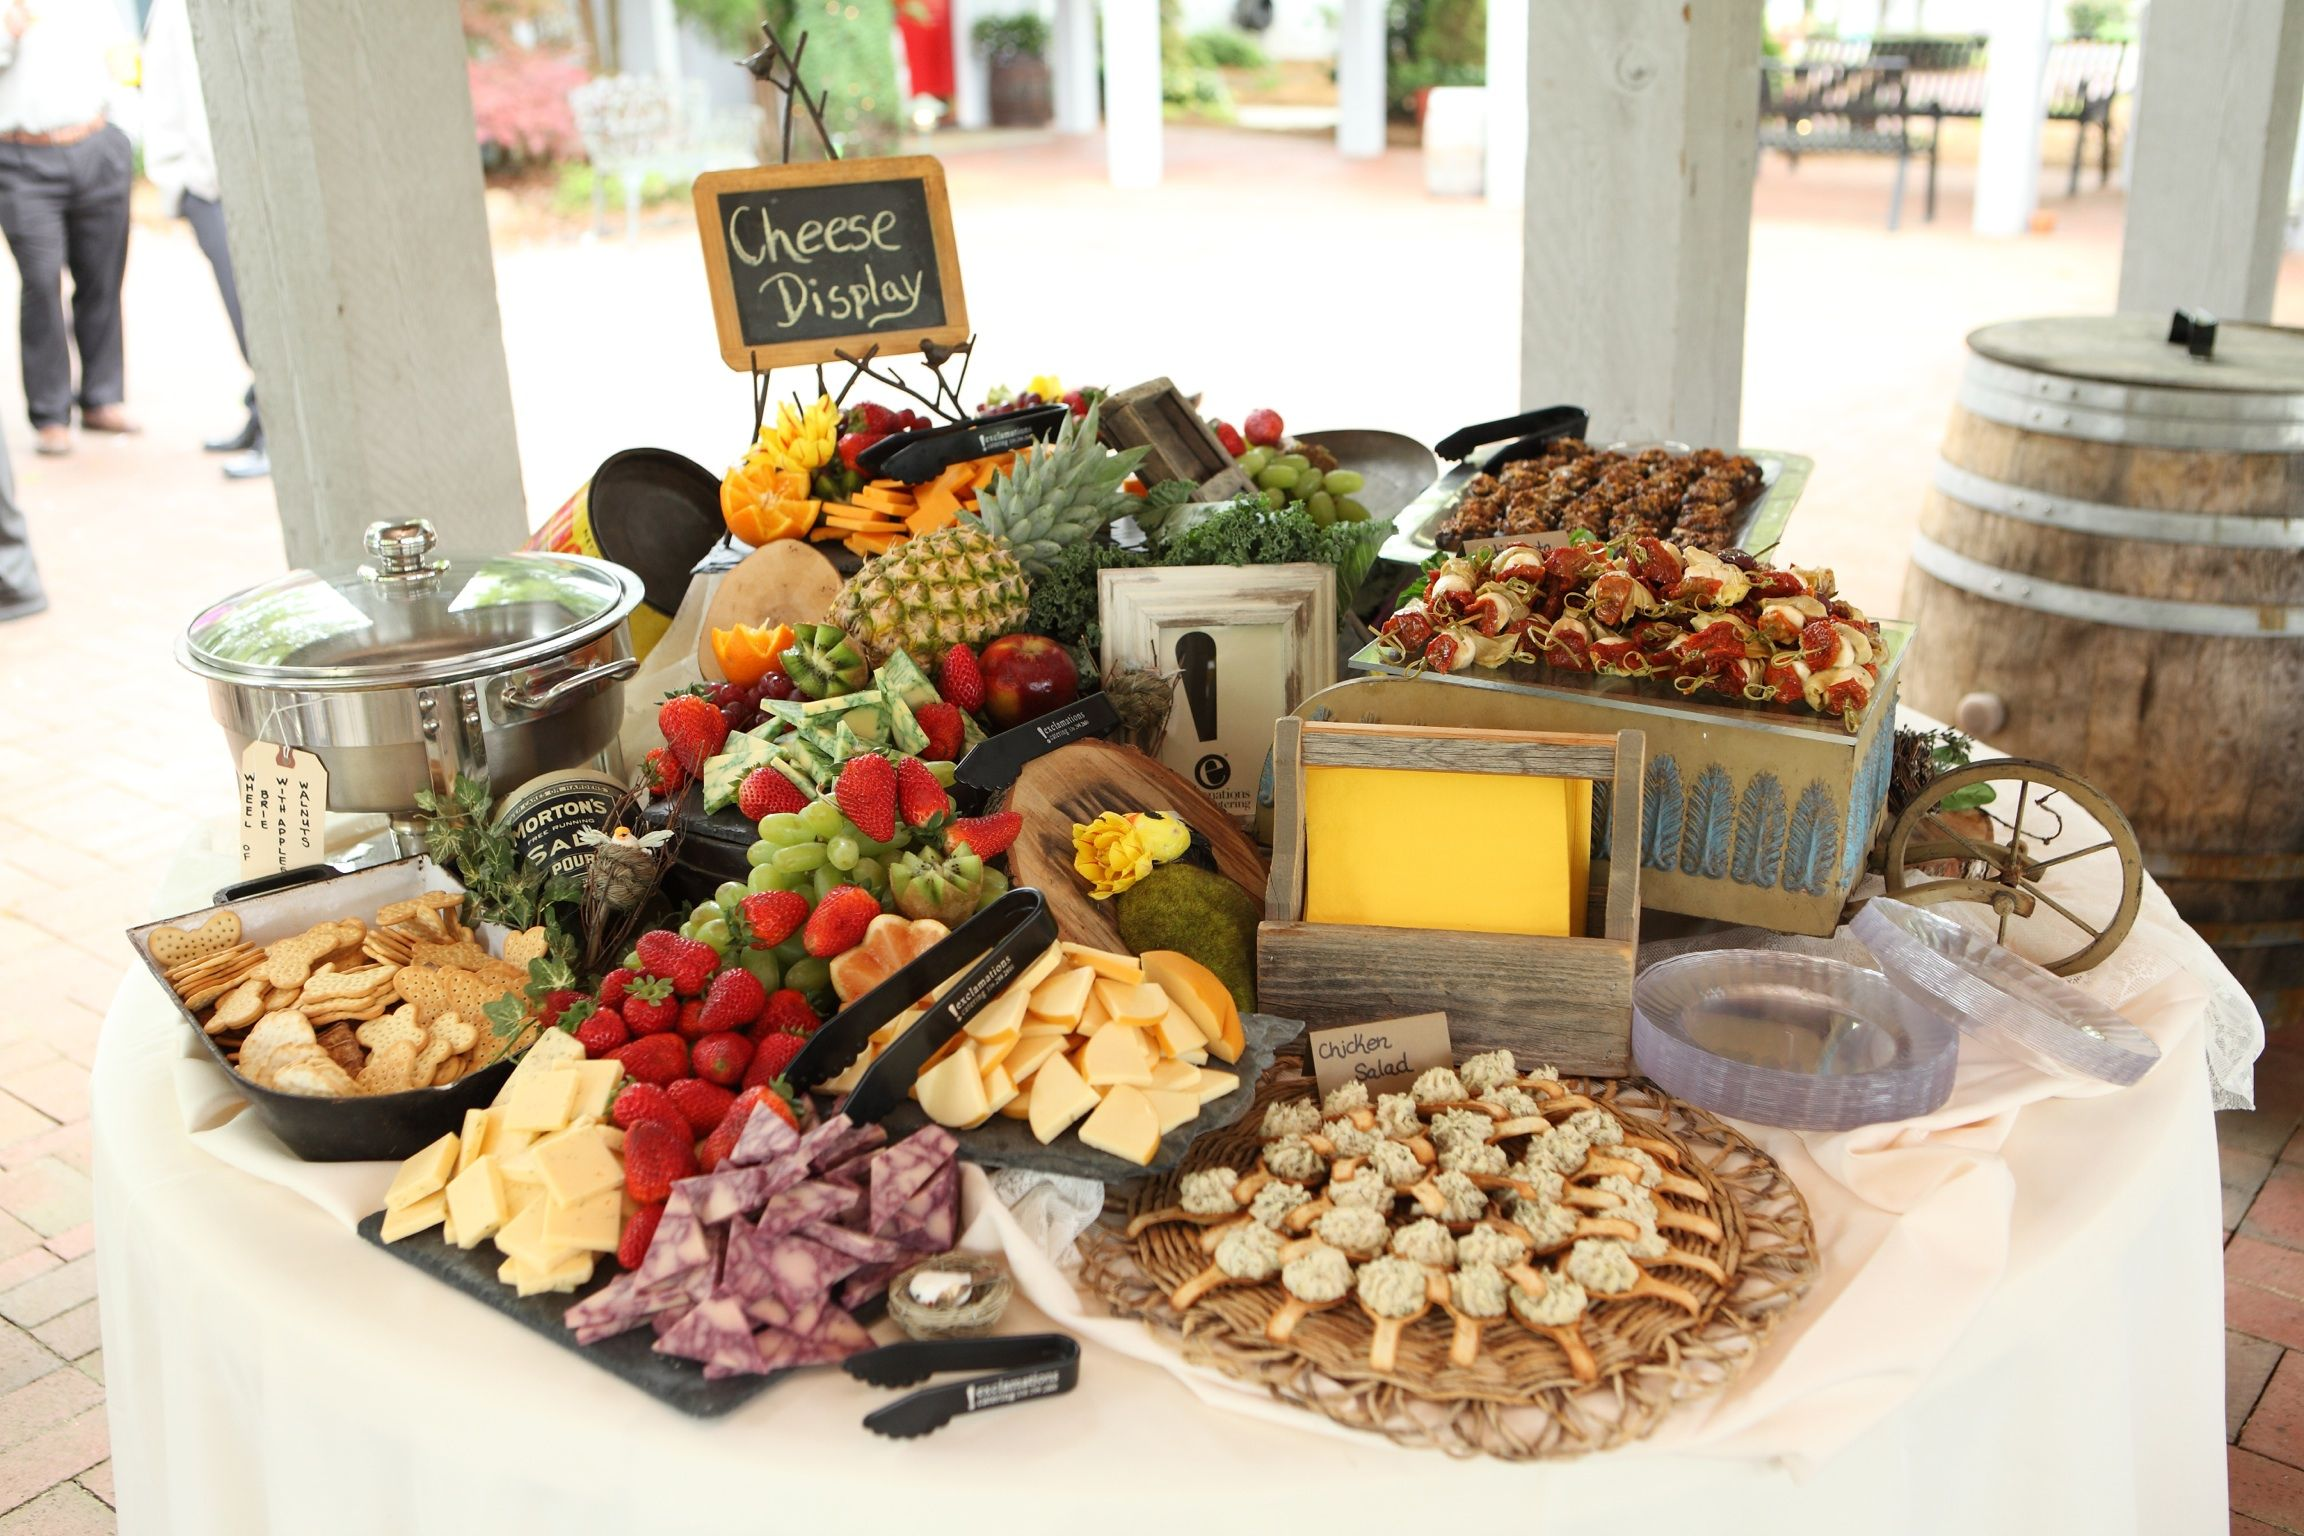 Perfect display of cheese crackers fruit finger foods etc for a